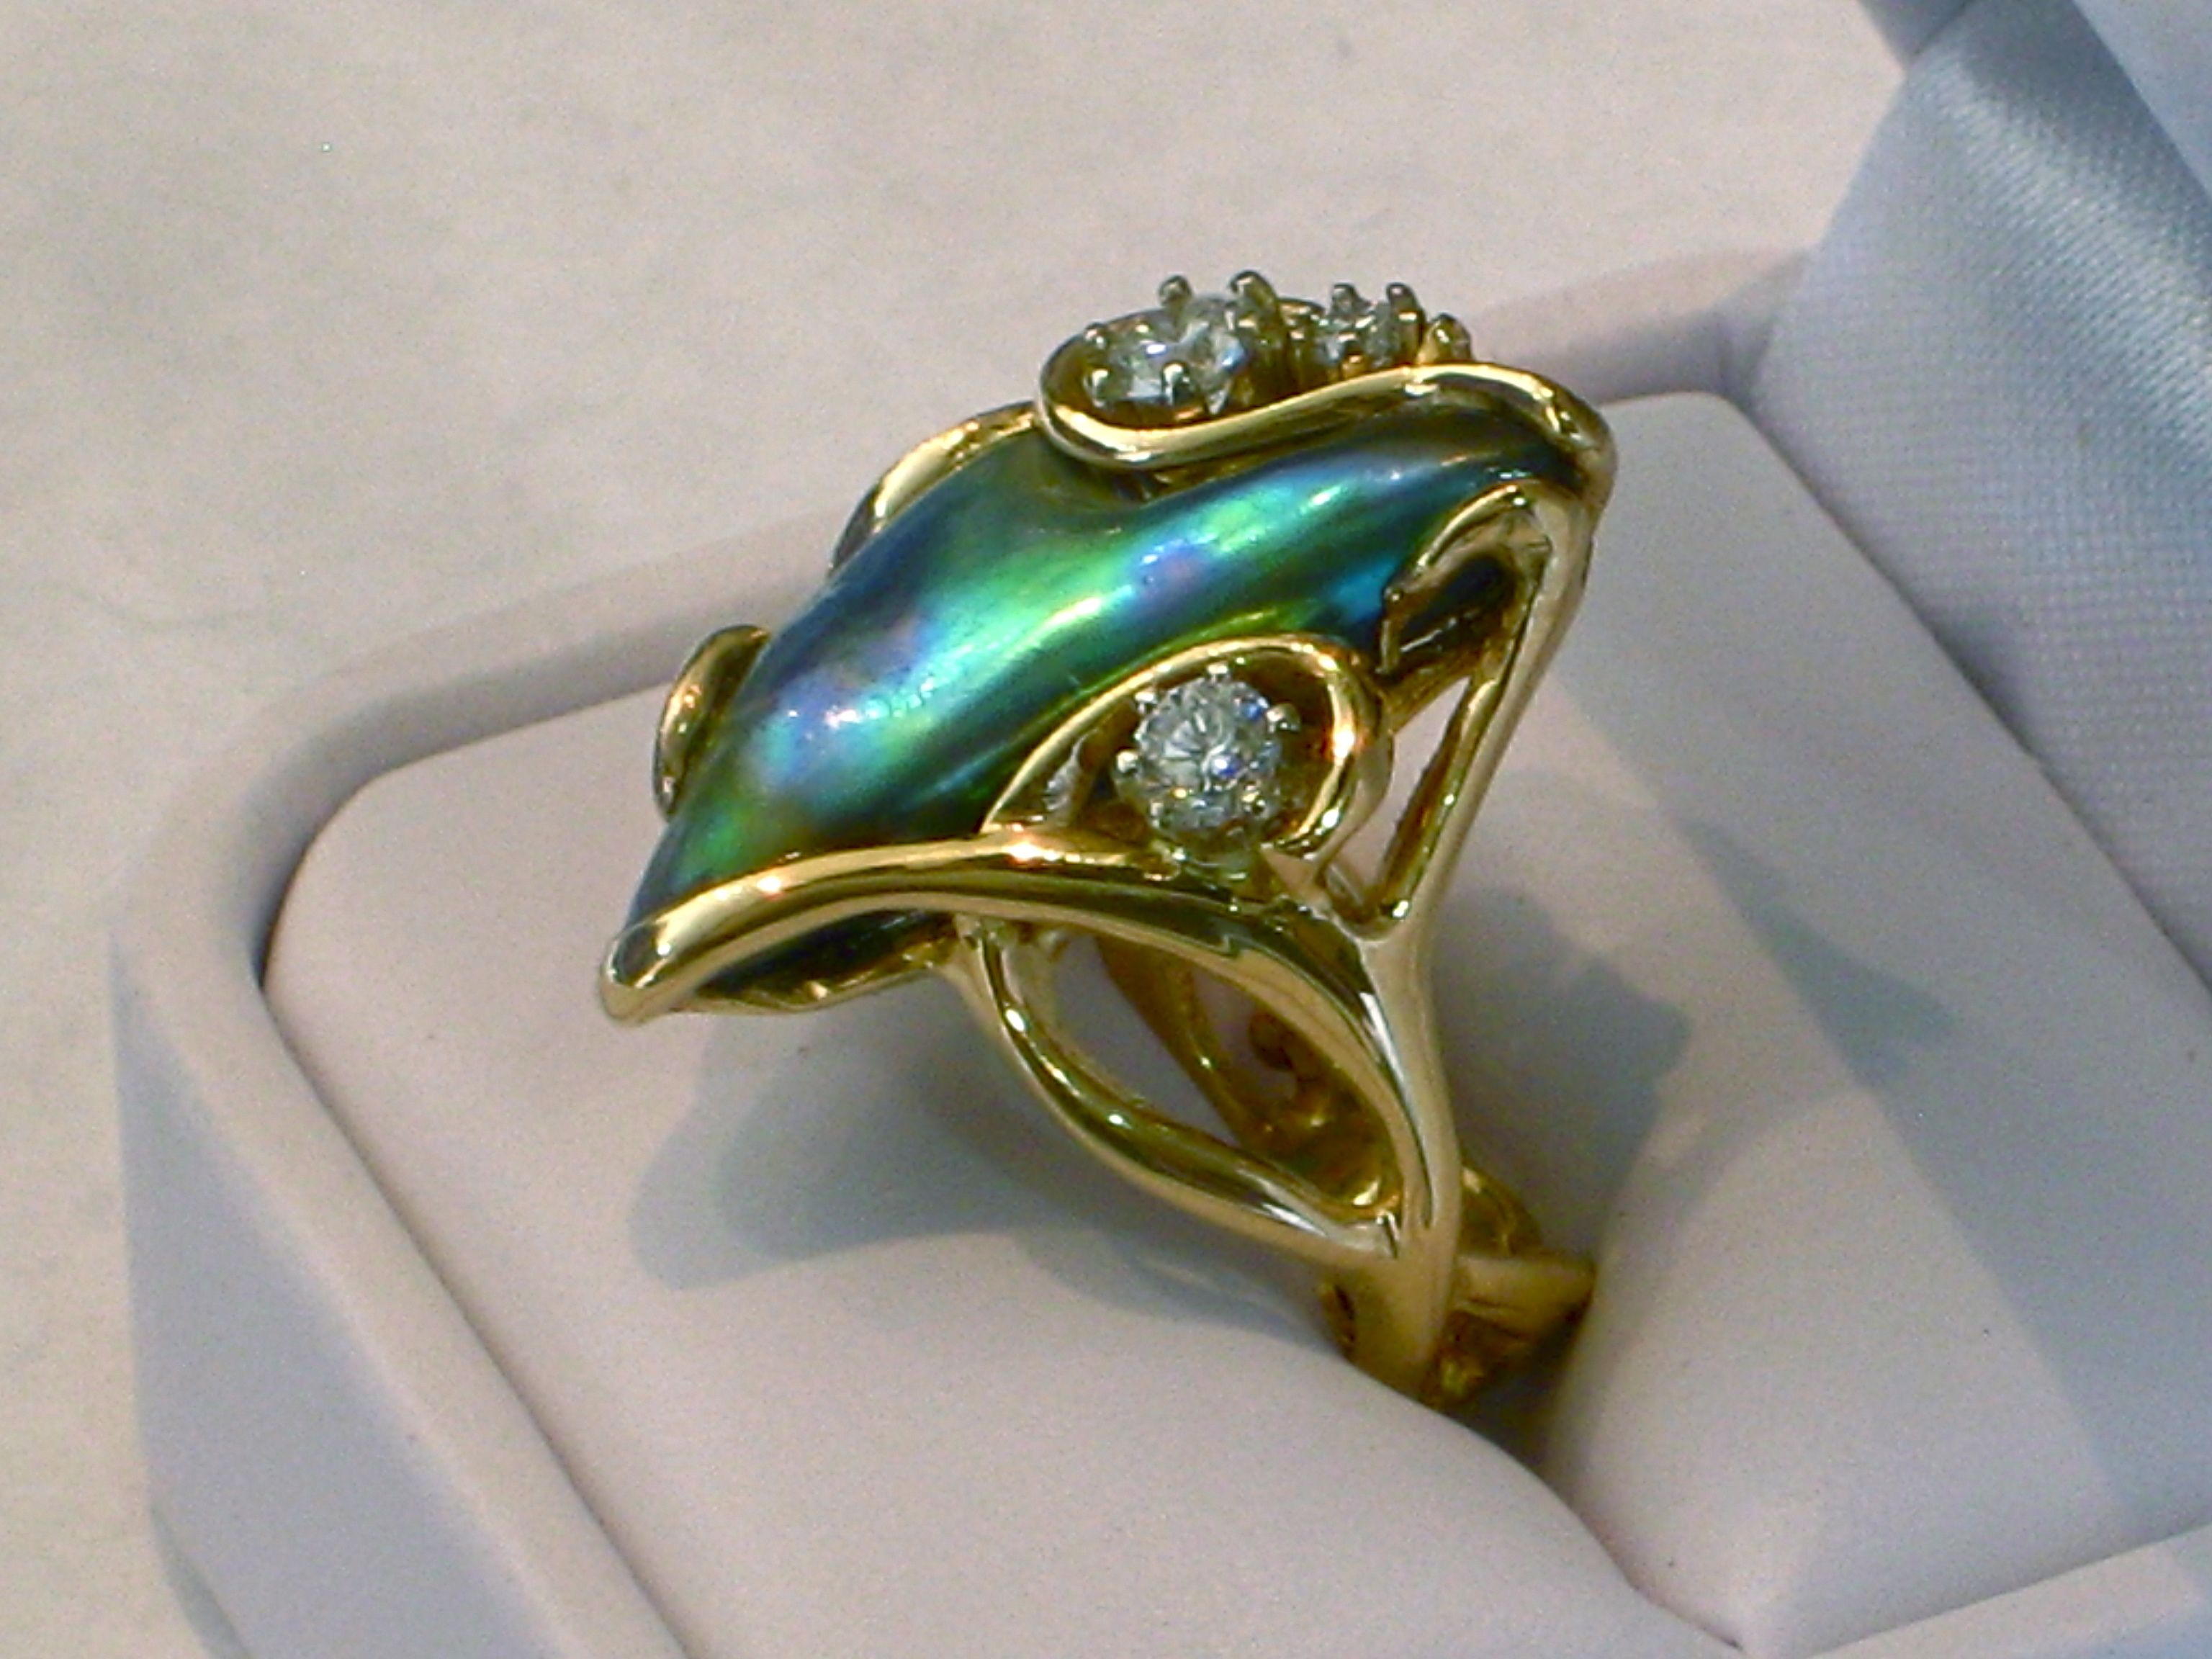 endearing kung silver products vintage true handcrafted heart from the btq ring devotion turquoise stone wedding abalone sr or shell aeravida a features this thailand sterling shaped details artisan rings style